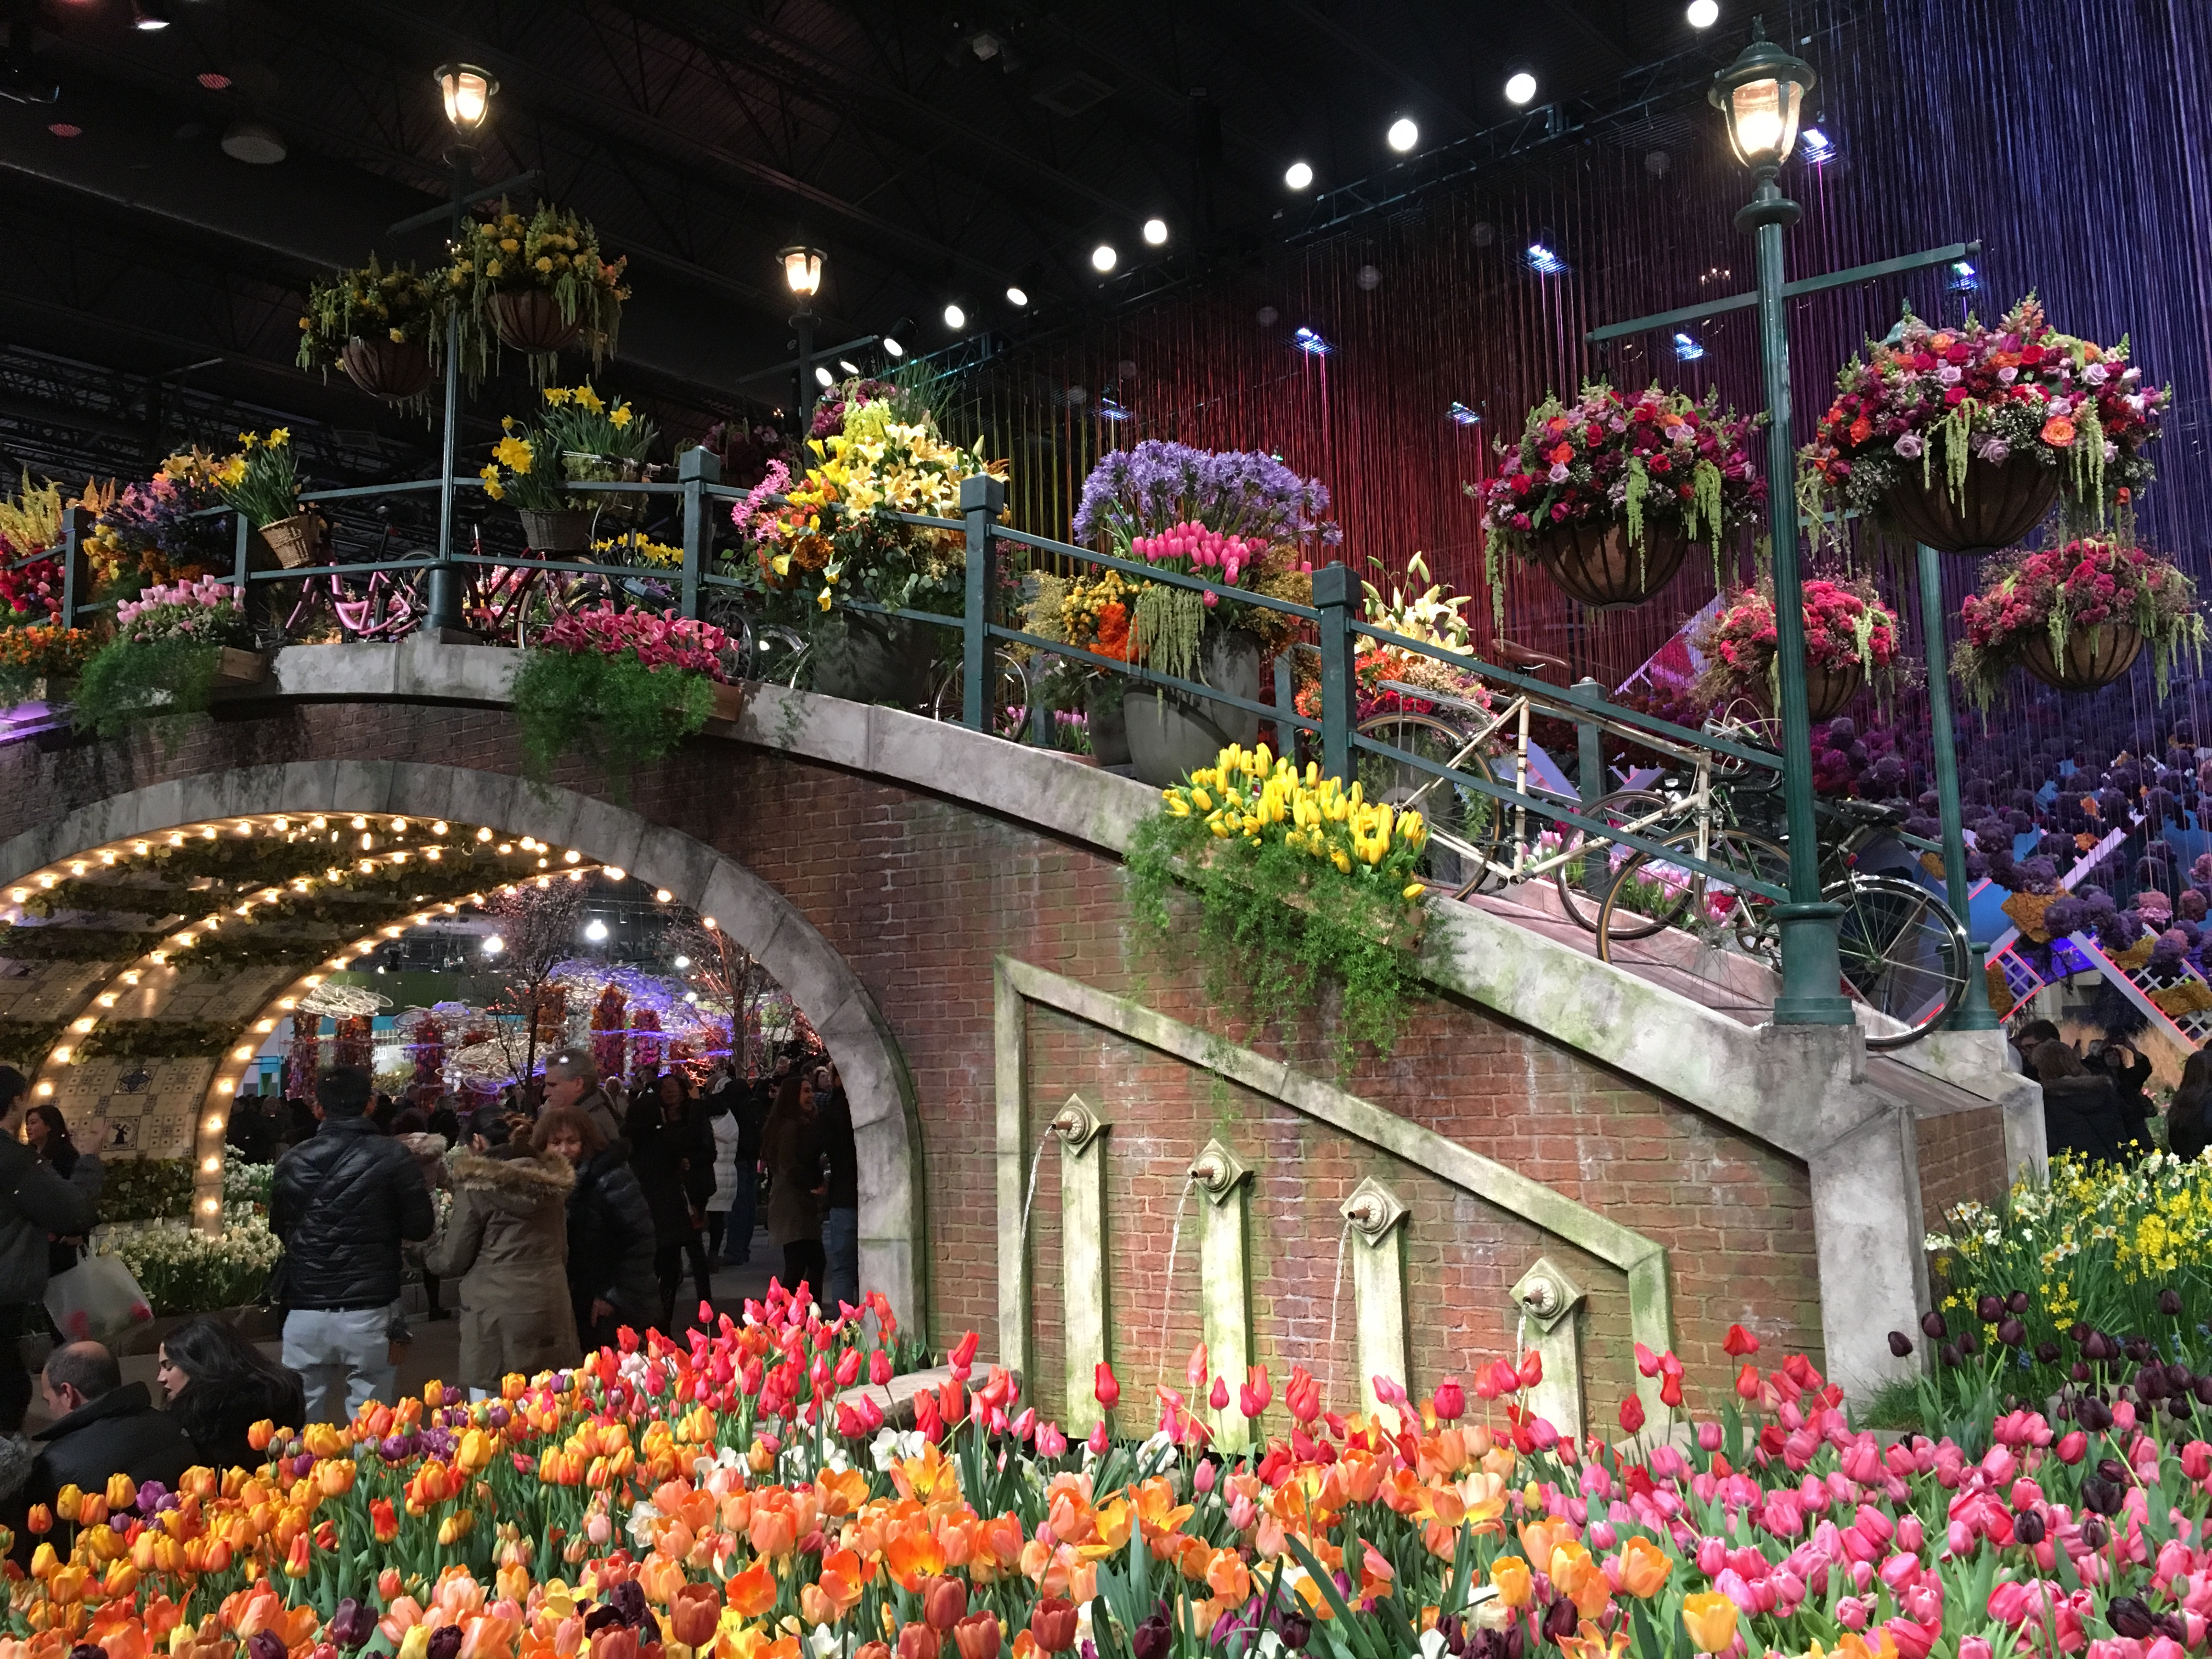 The 2017 Philadelphia Flower Show is Blooming with Exhibits the Whole Family